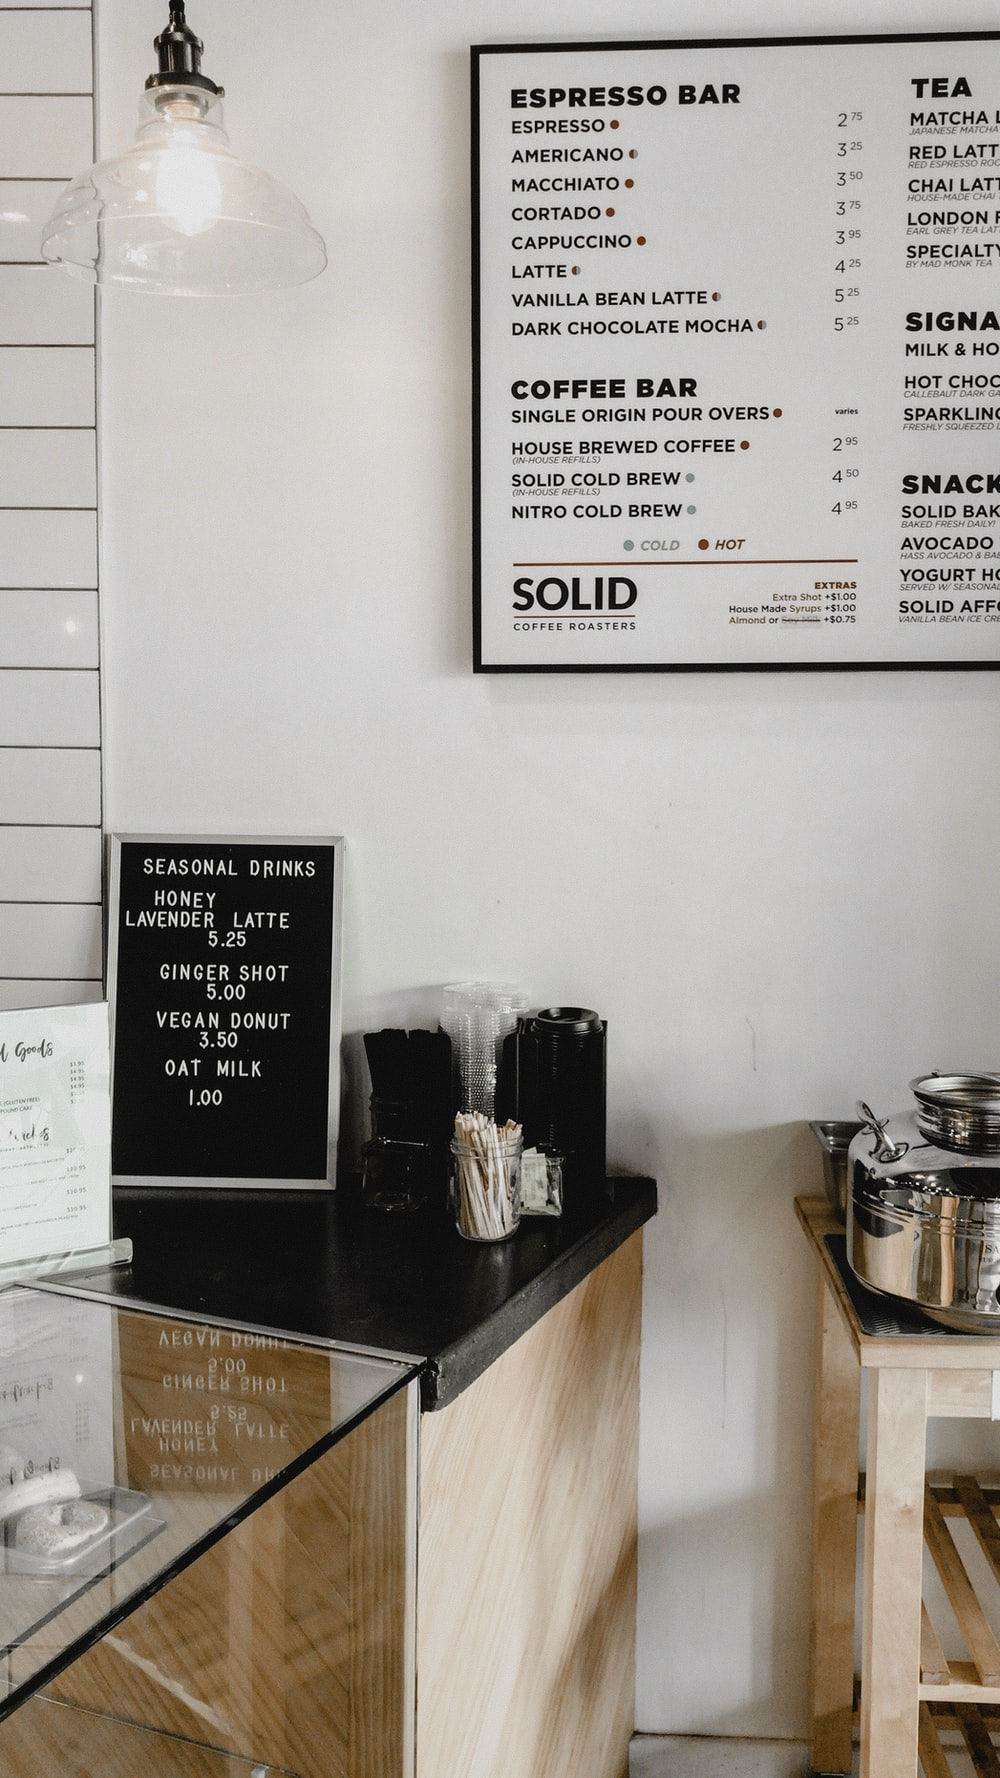 Cafe menu on table and wall